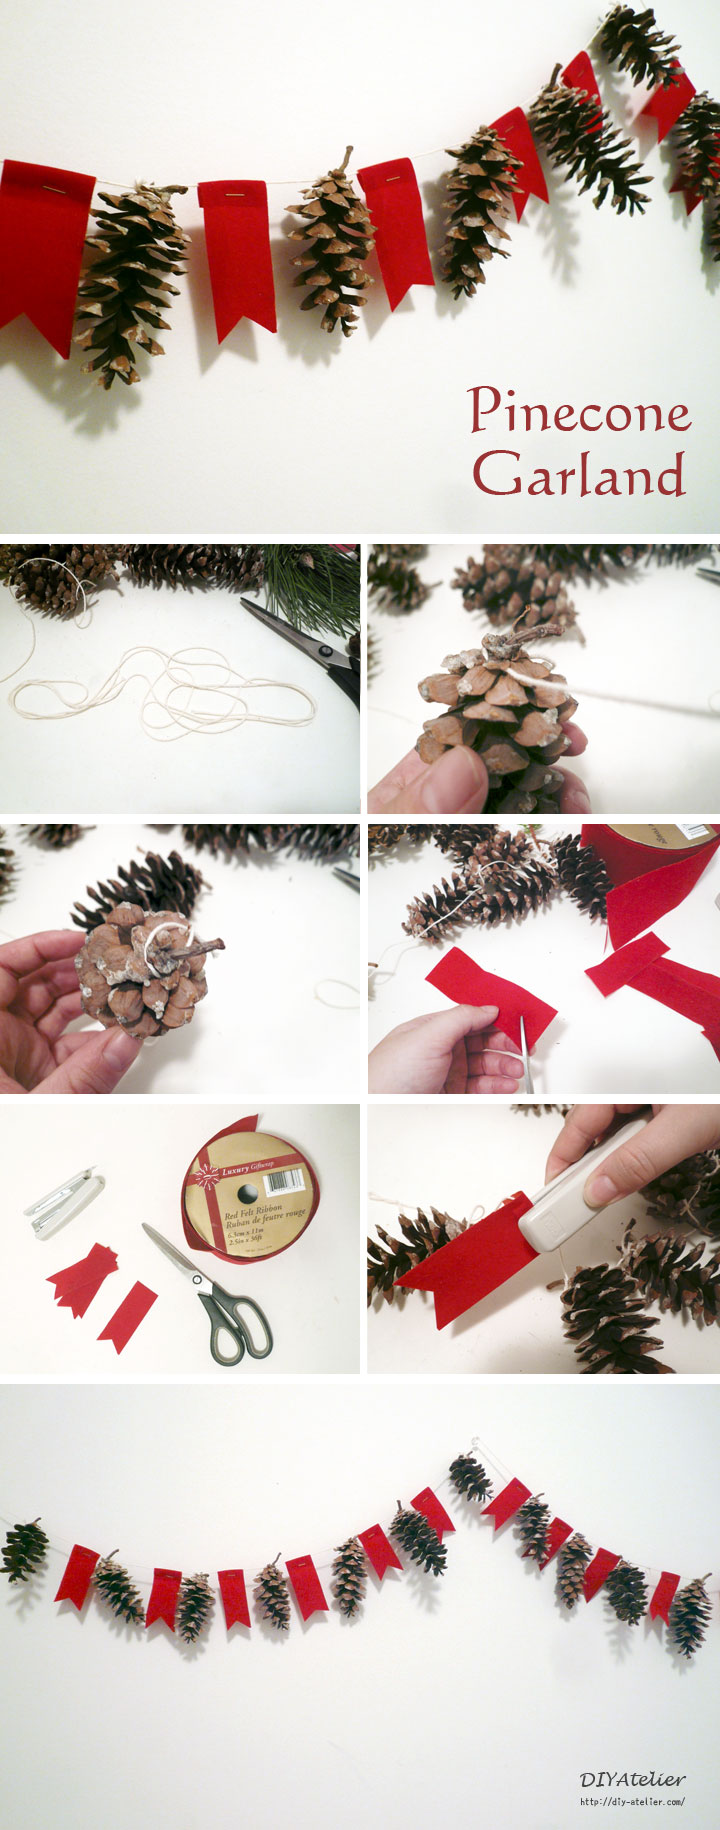 pinecone_garland